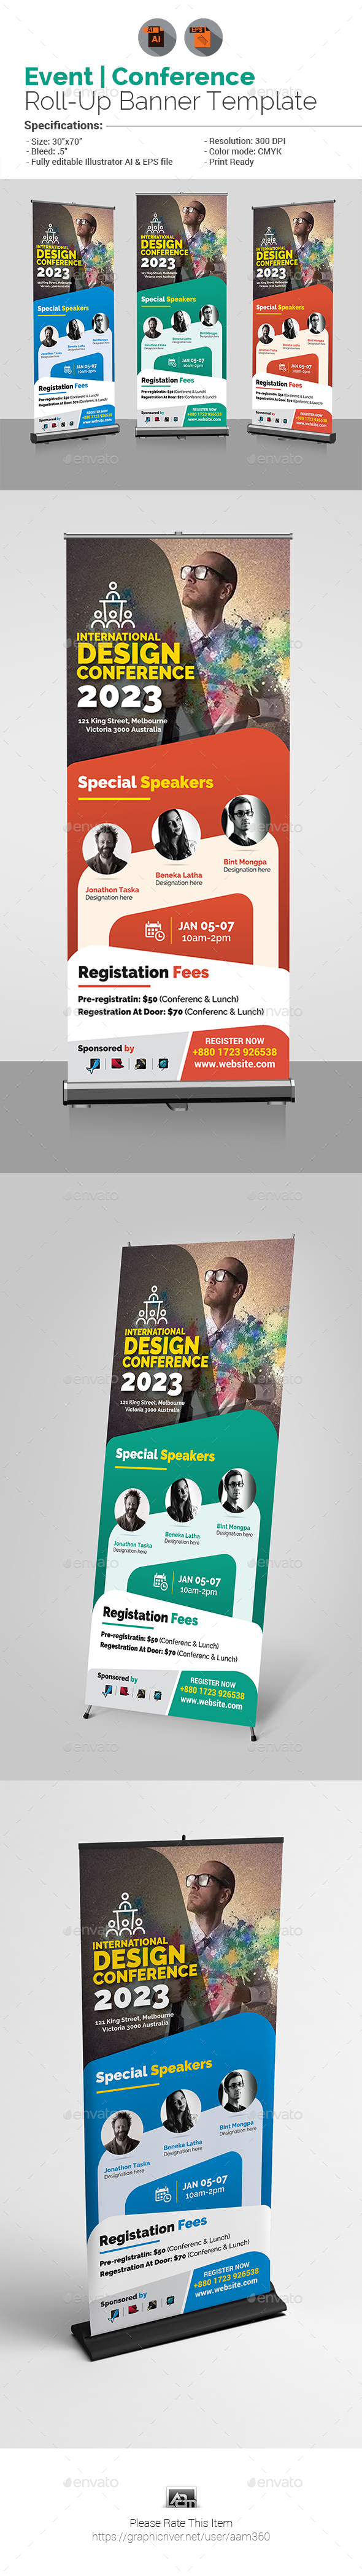 Conference Roll-Up Banner Template - Signage Print Templates